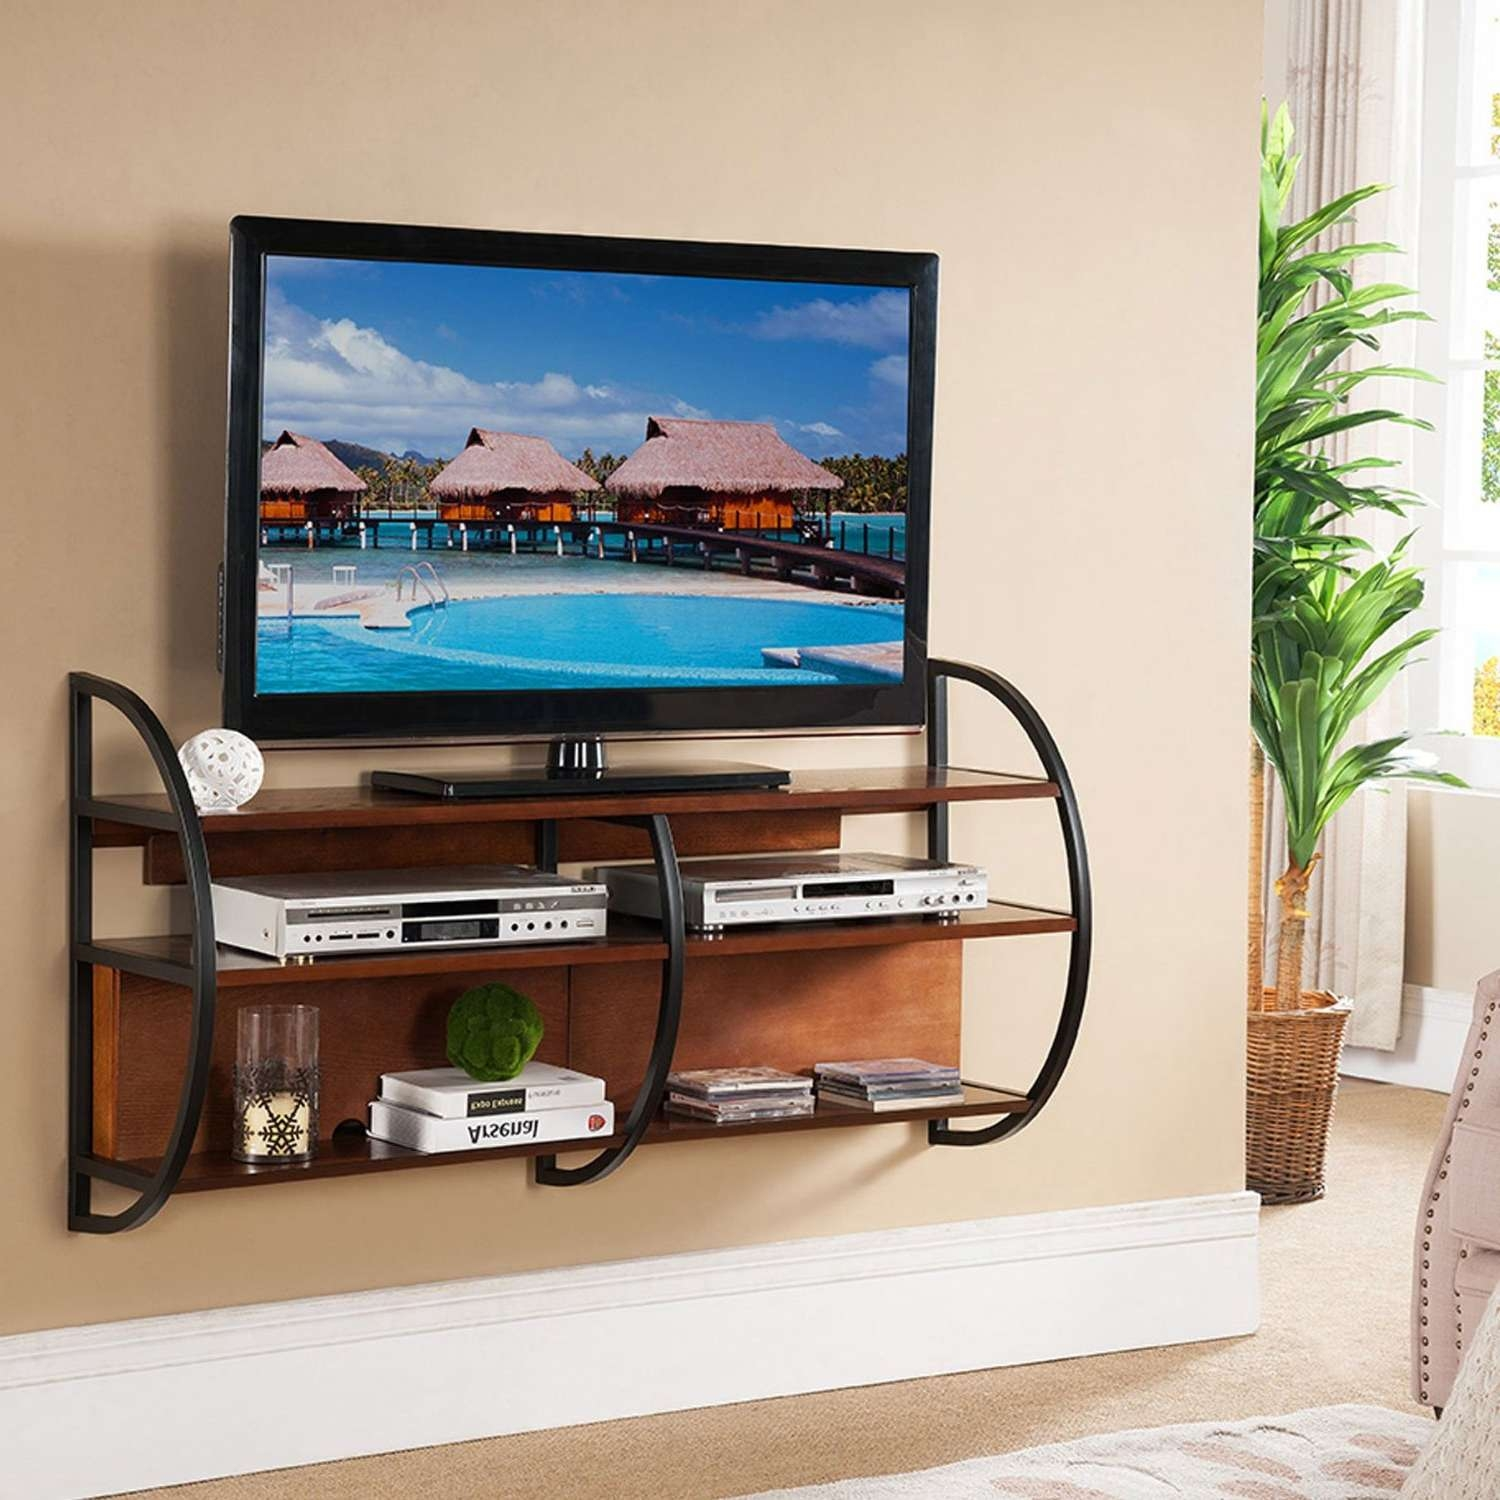 Terrific Tv Stands Small Spaces Fresh On Decorating Collection Regarding Tv Stands For Small Rooms (View 11 of 15)